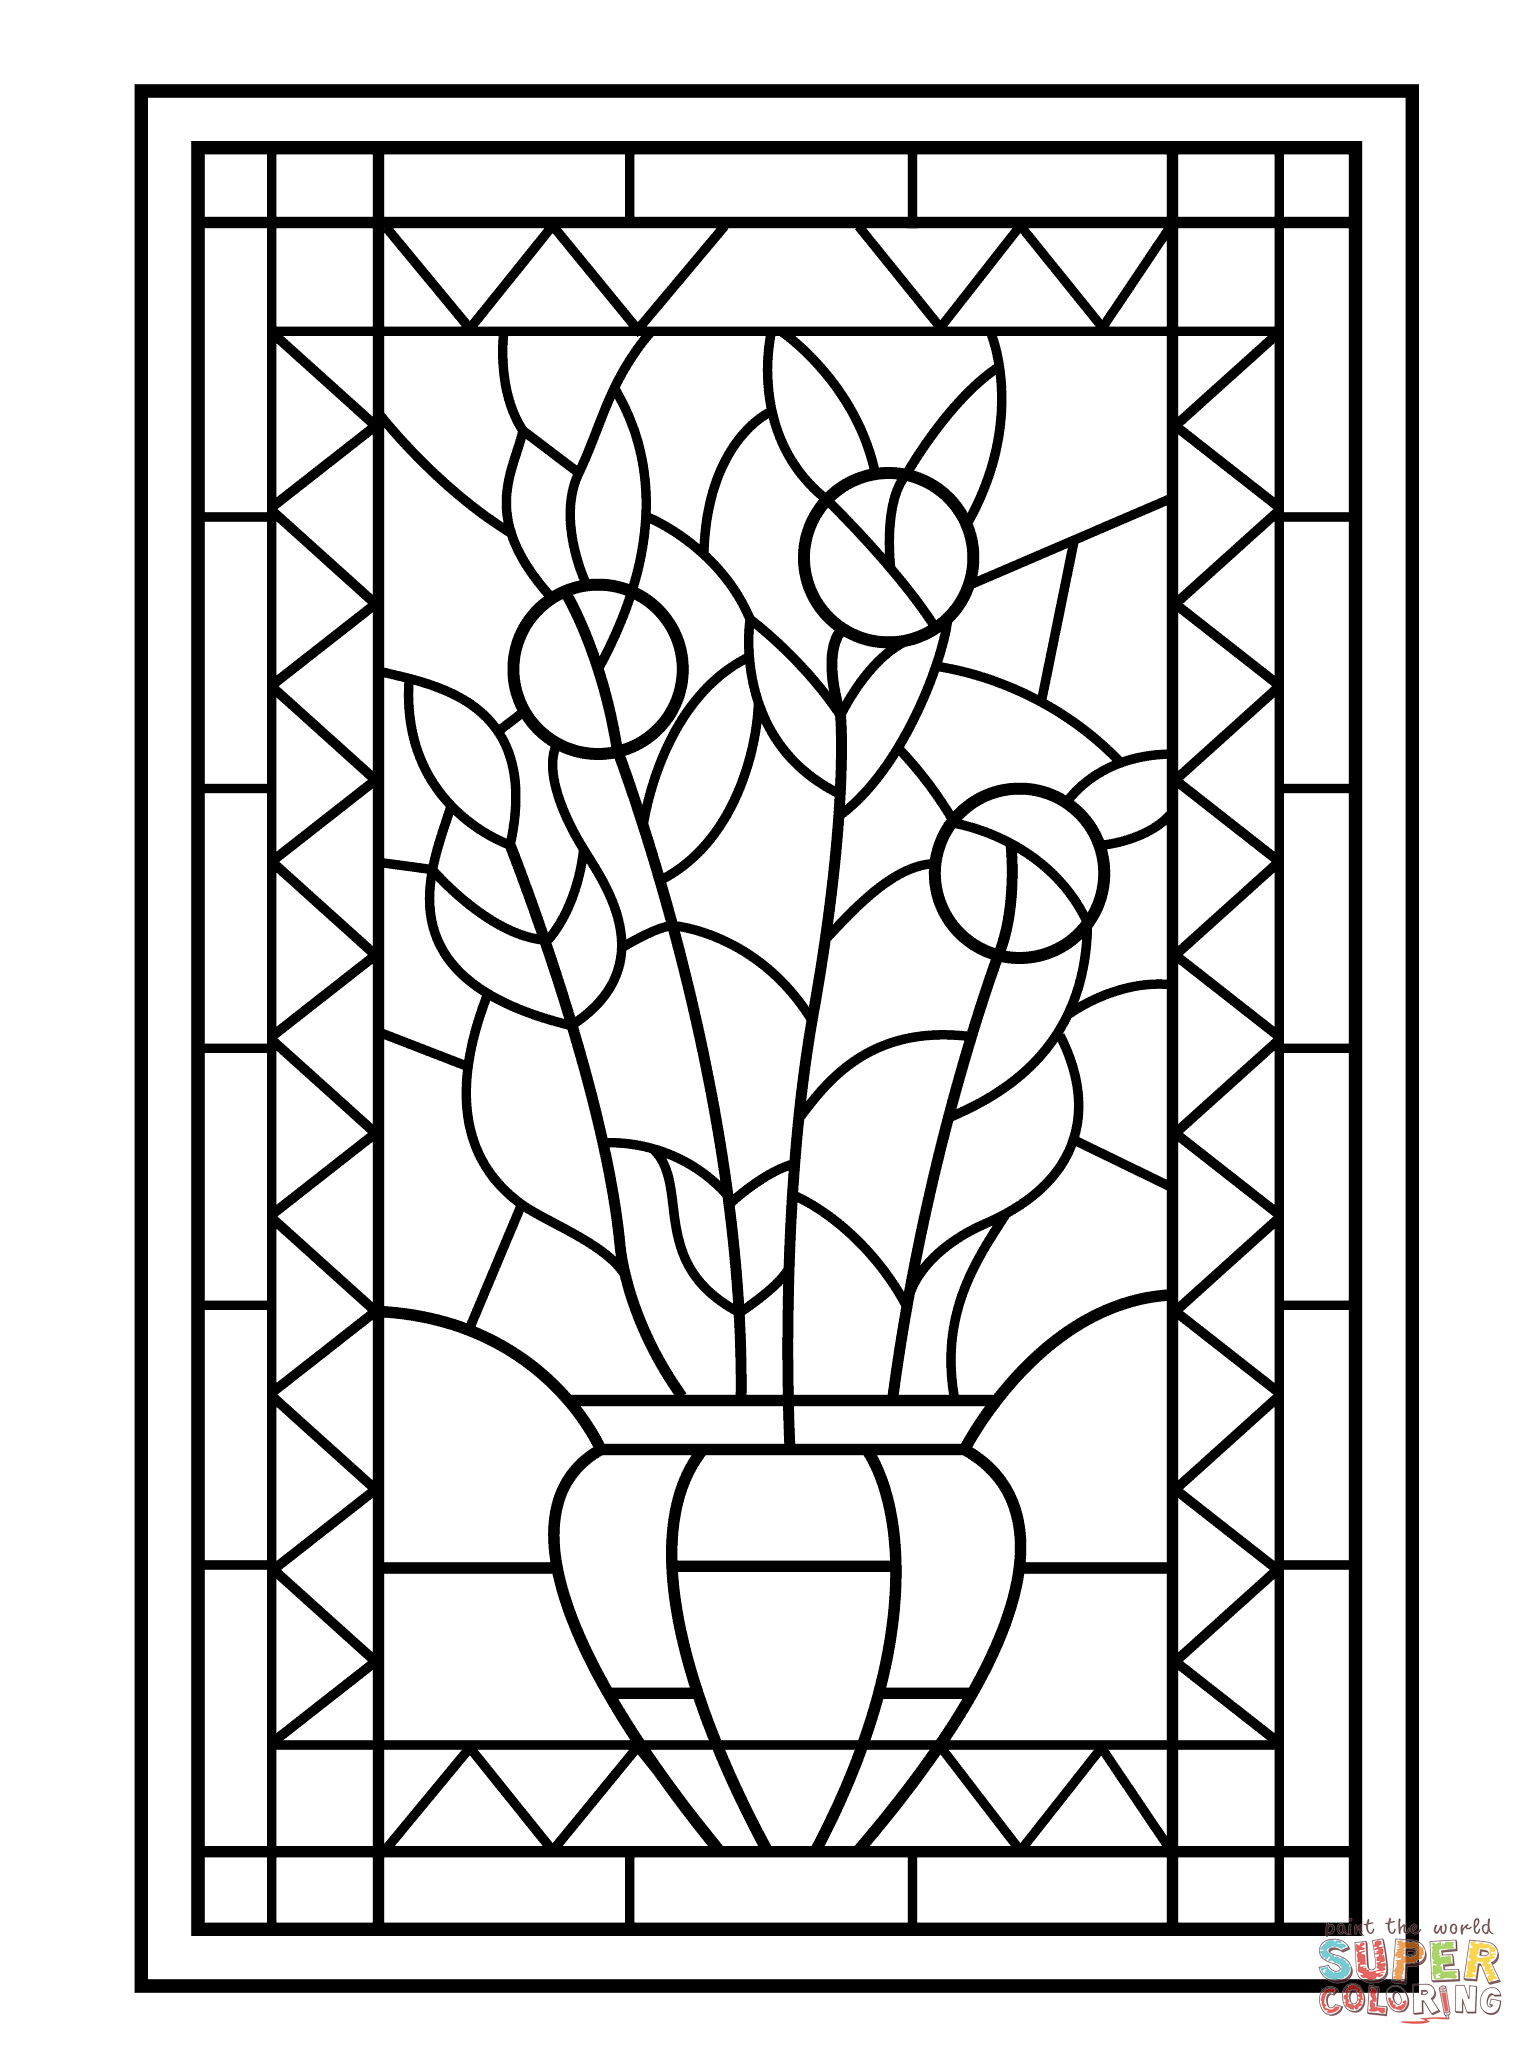 Flower Vase Stained Glass Coloring Page Free Printable Coloring Pages Stained Glass Flowers Flower Coloring Pages Stained Glass Christmas